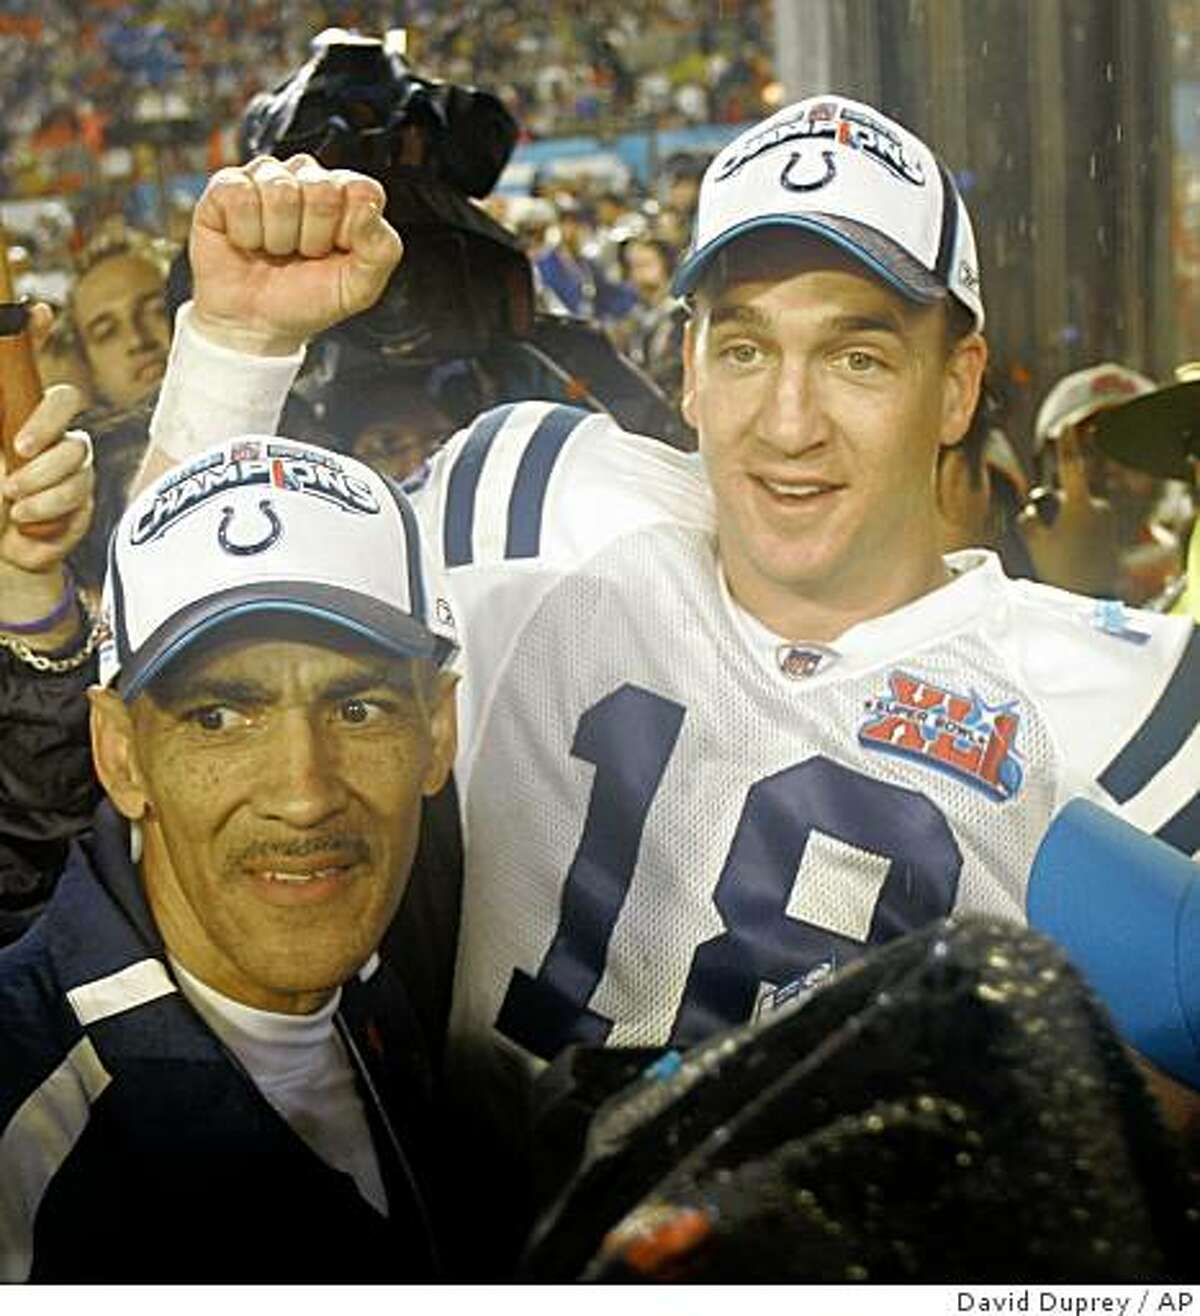 Indianapolis Colts head coach Tony Dungy and Indianapolis Colts quarterback Peyton Manning (18) are seen after defeating the Chicago Bears 29-17 to win the Super Bowl XLI football game at Dolphin Stadium in Miami, Sunday, Feb. 4, 2007. (AP Photo/David Duprey)